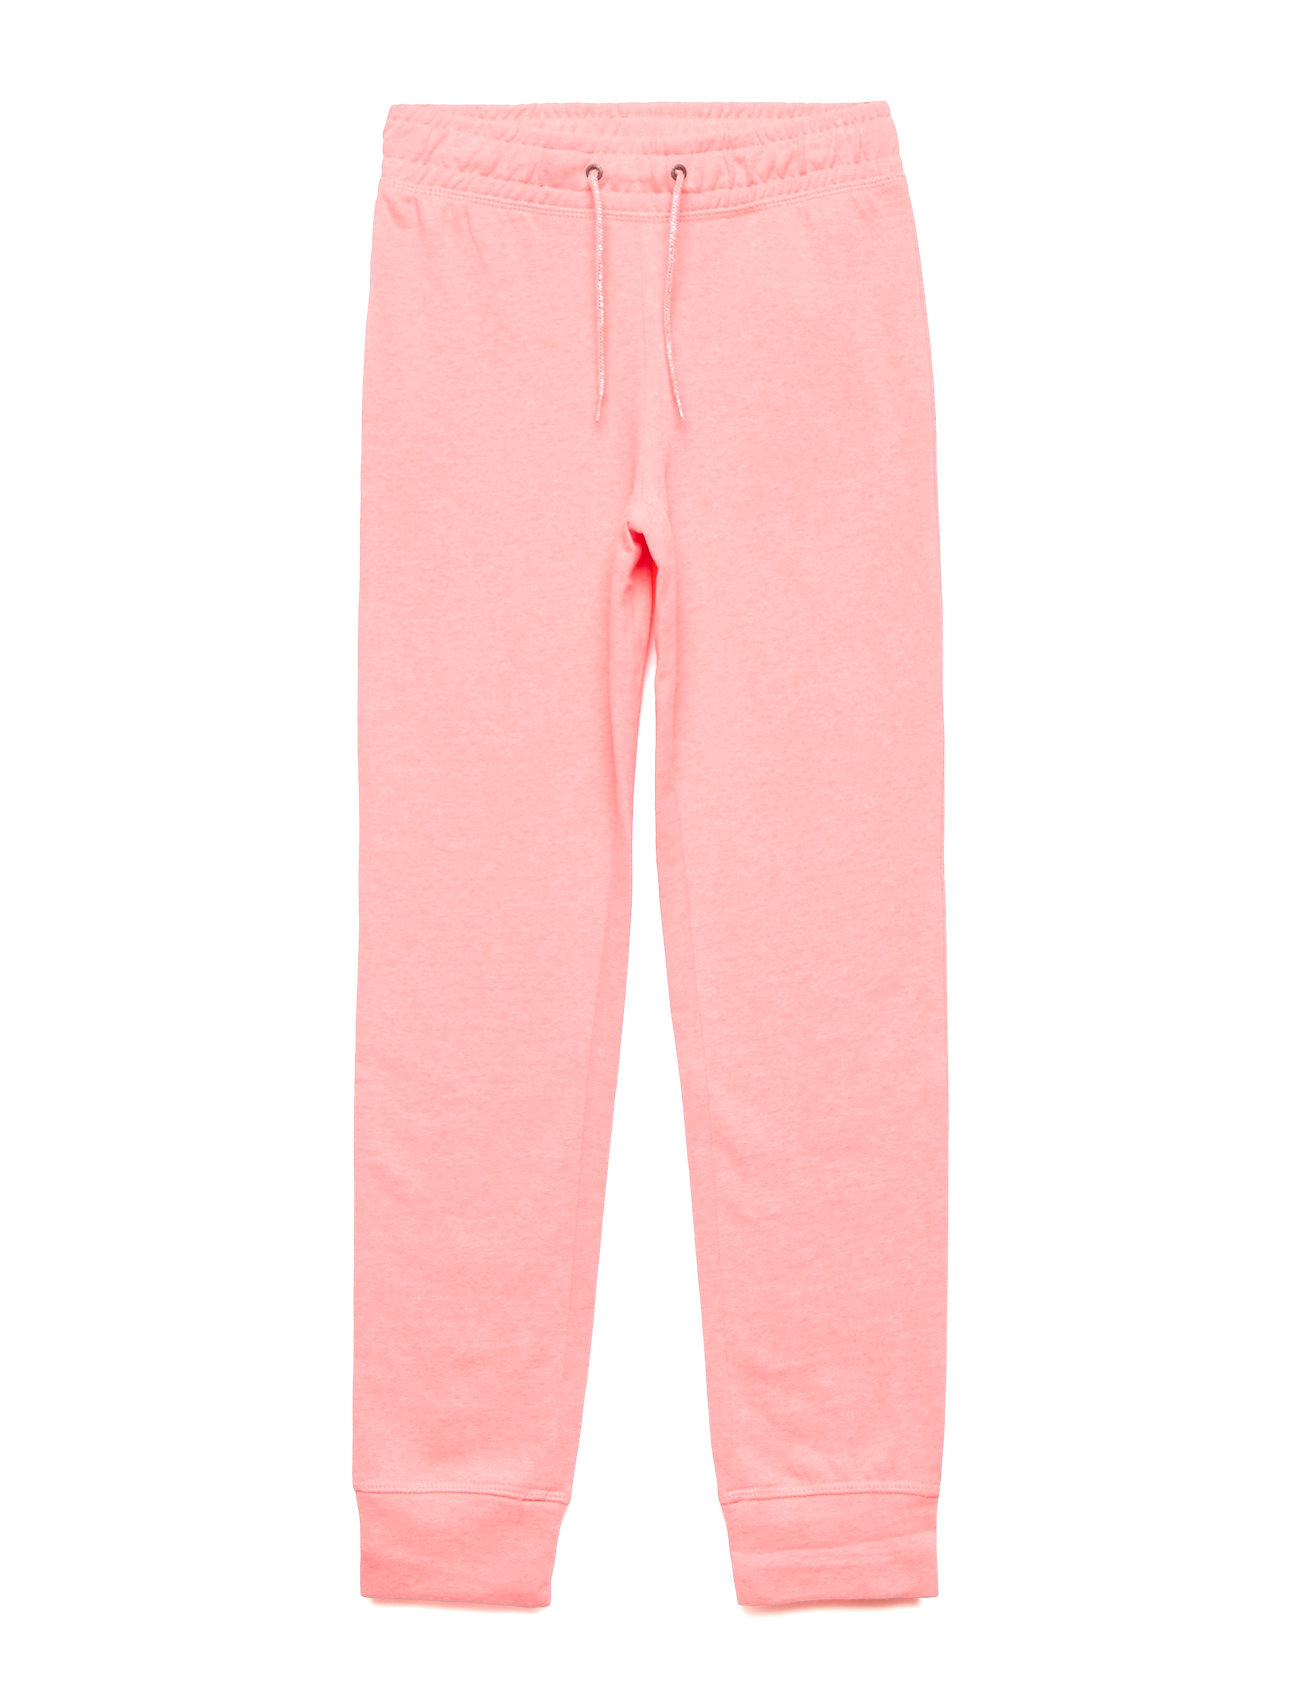 Konsound Long Pant Ok Swt - Kids Only